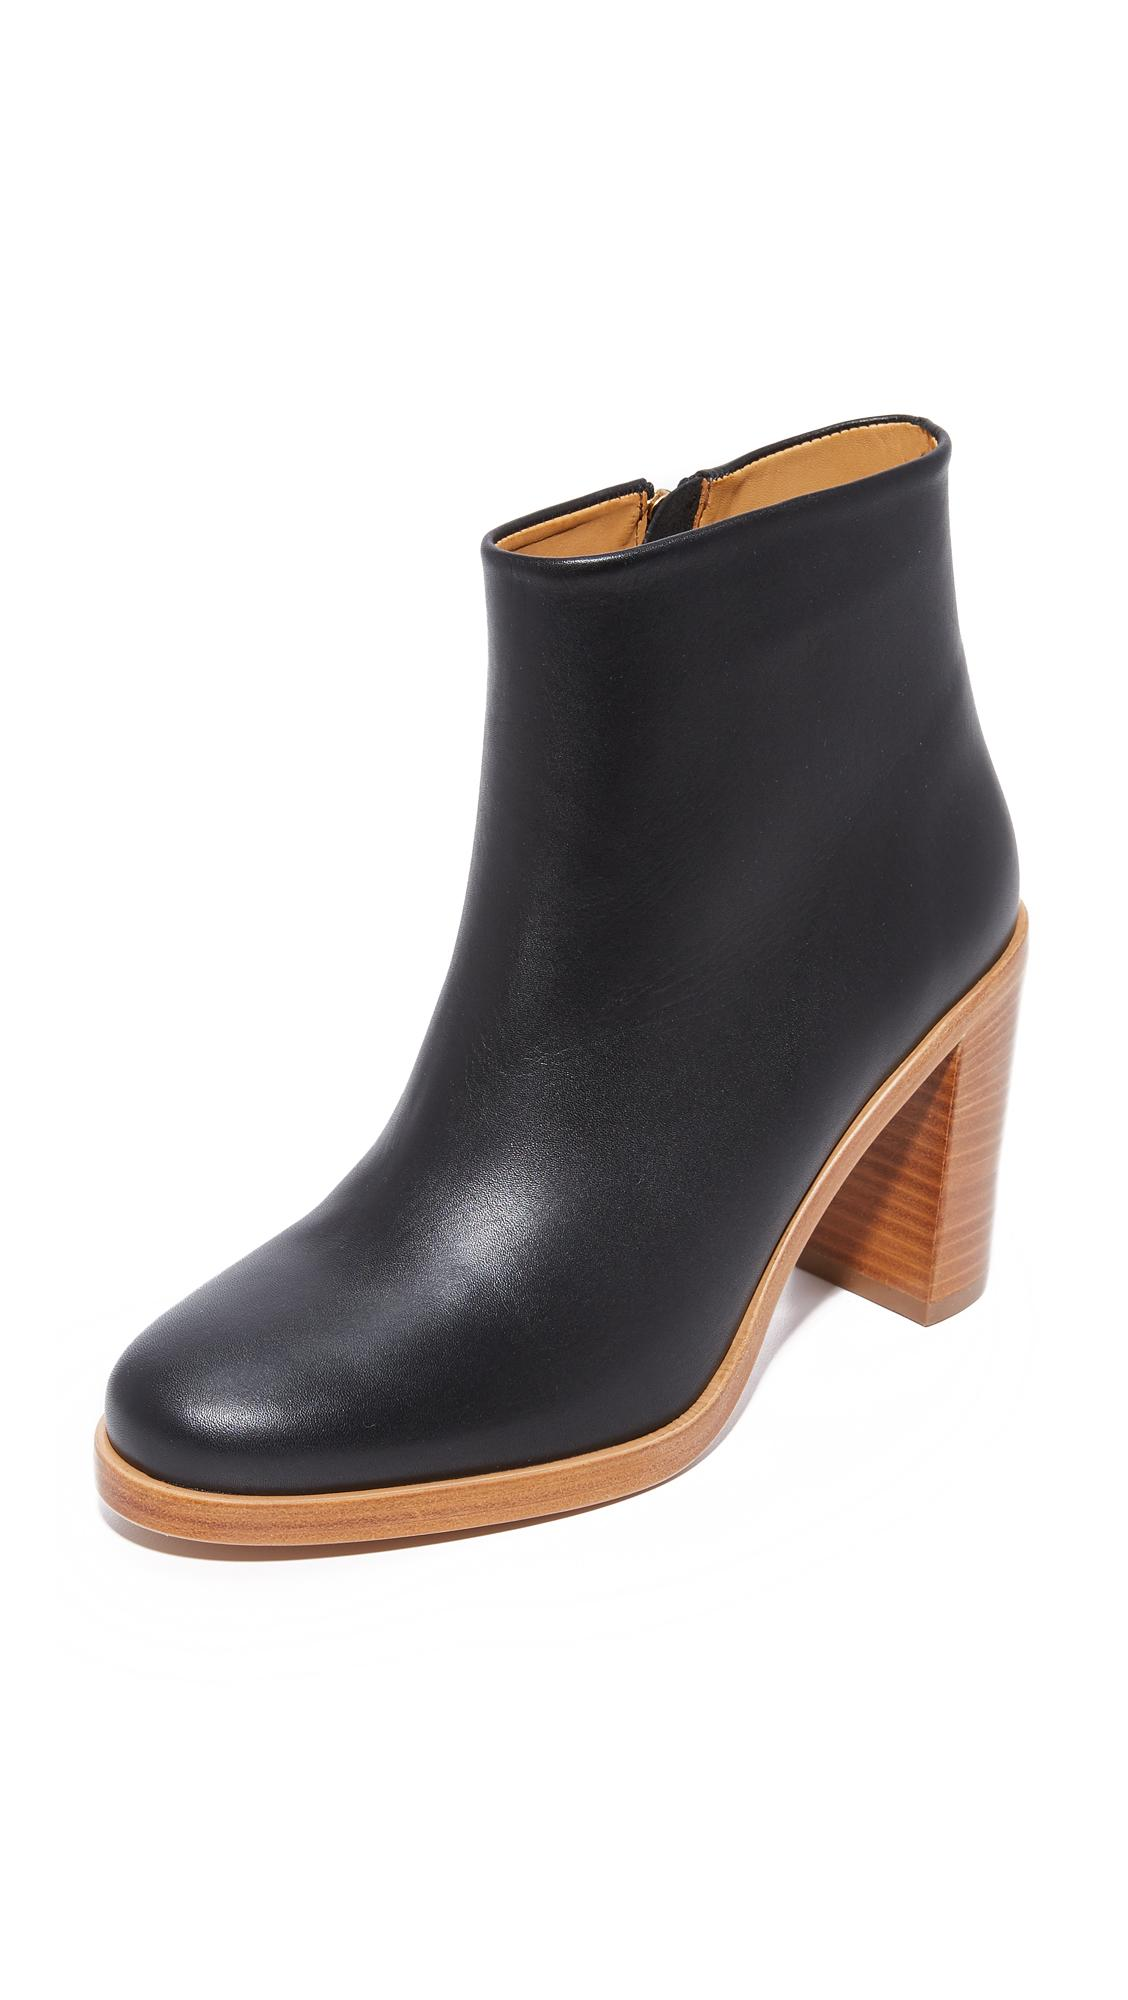 A.P.C. Leather Chic Boots in Black